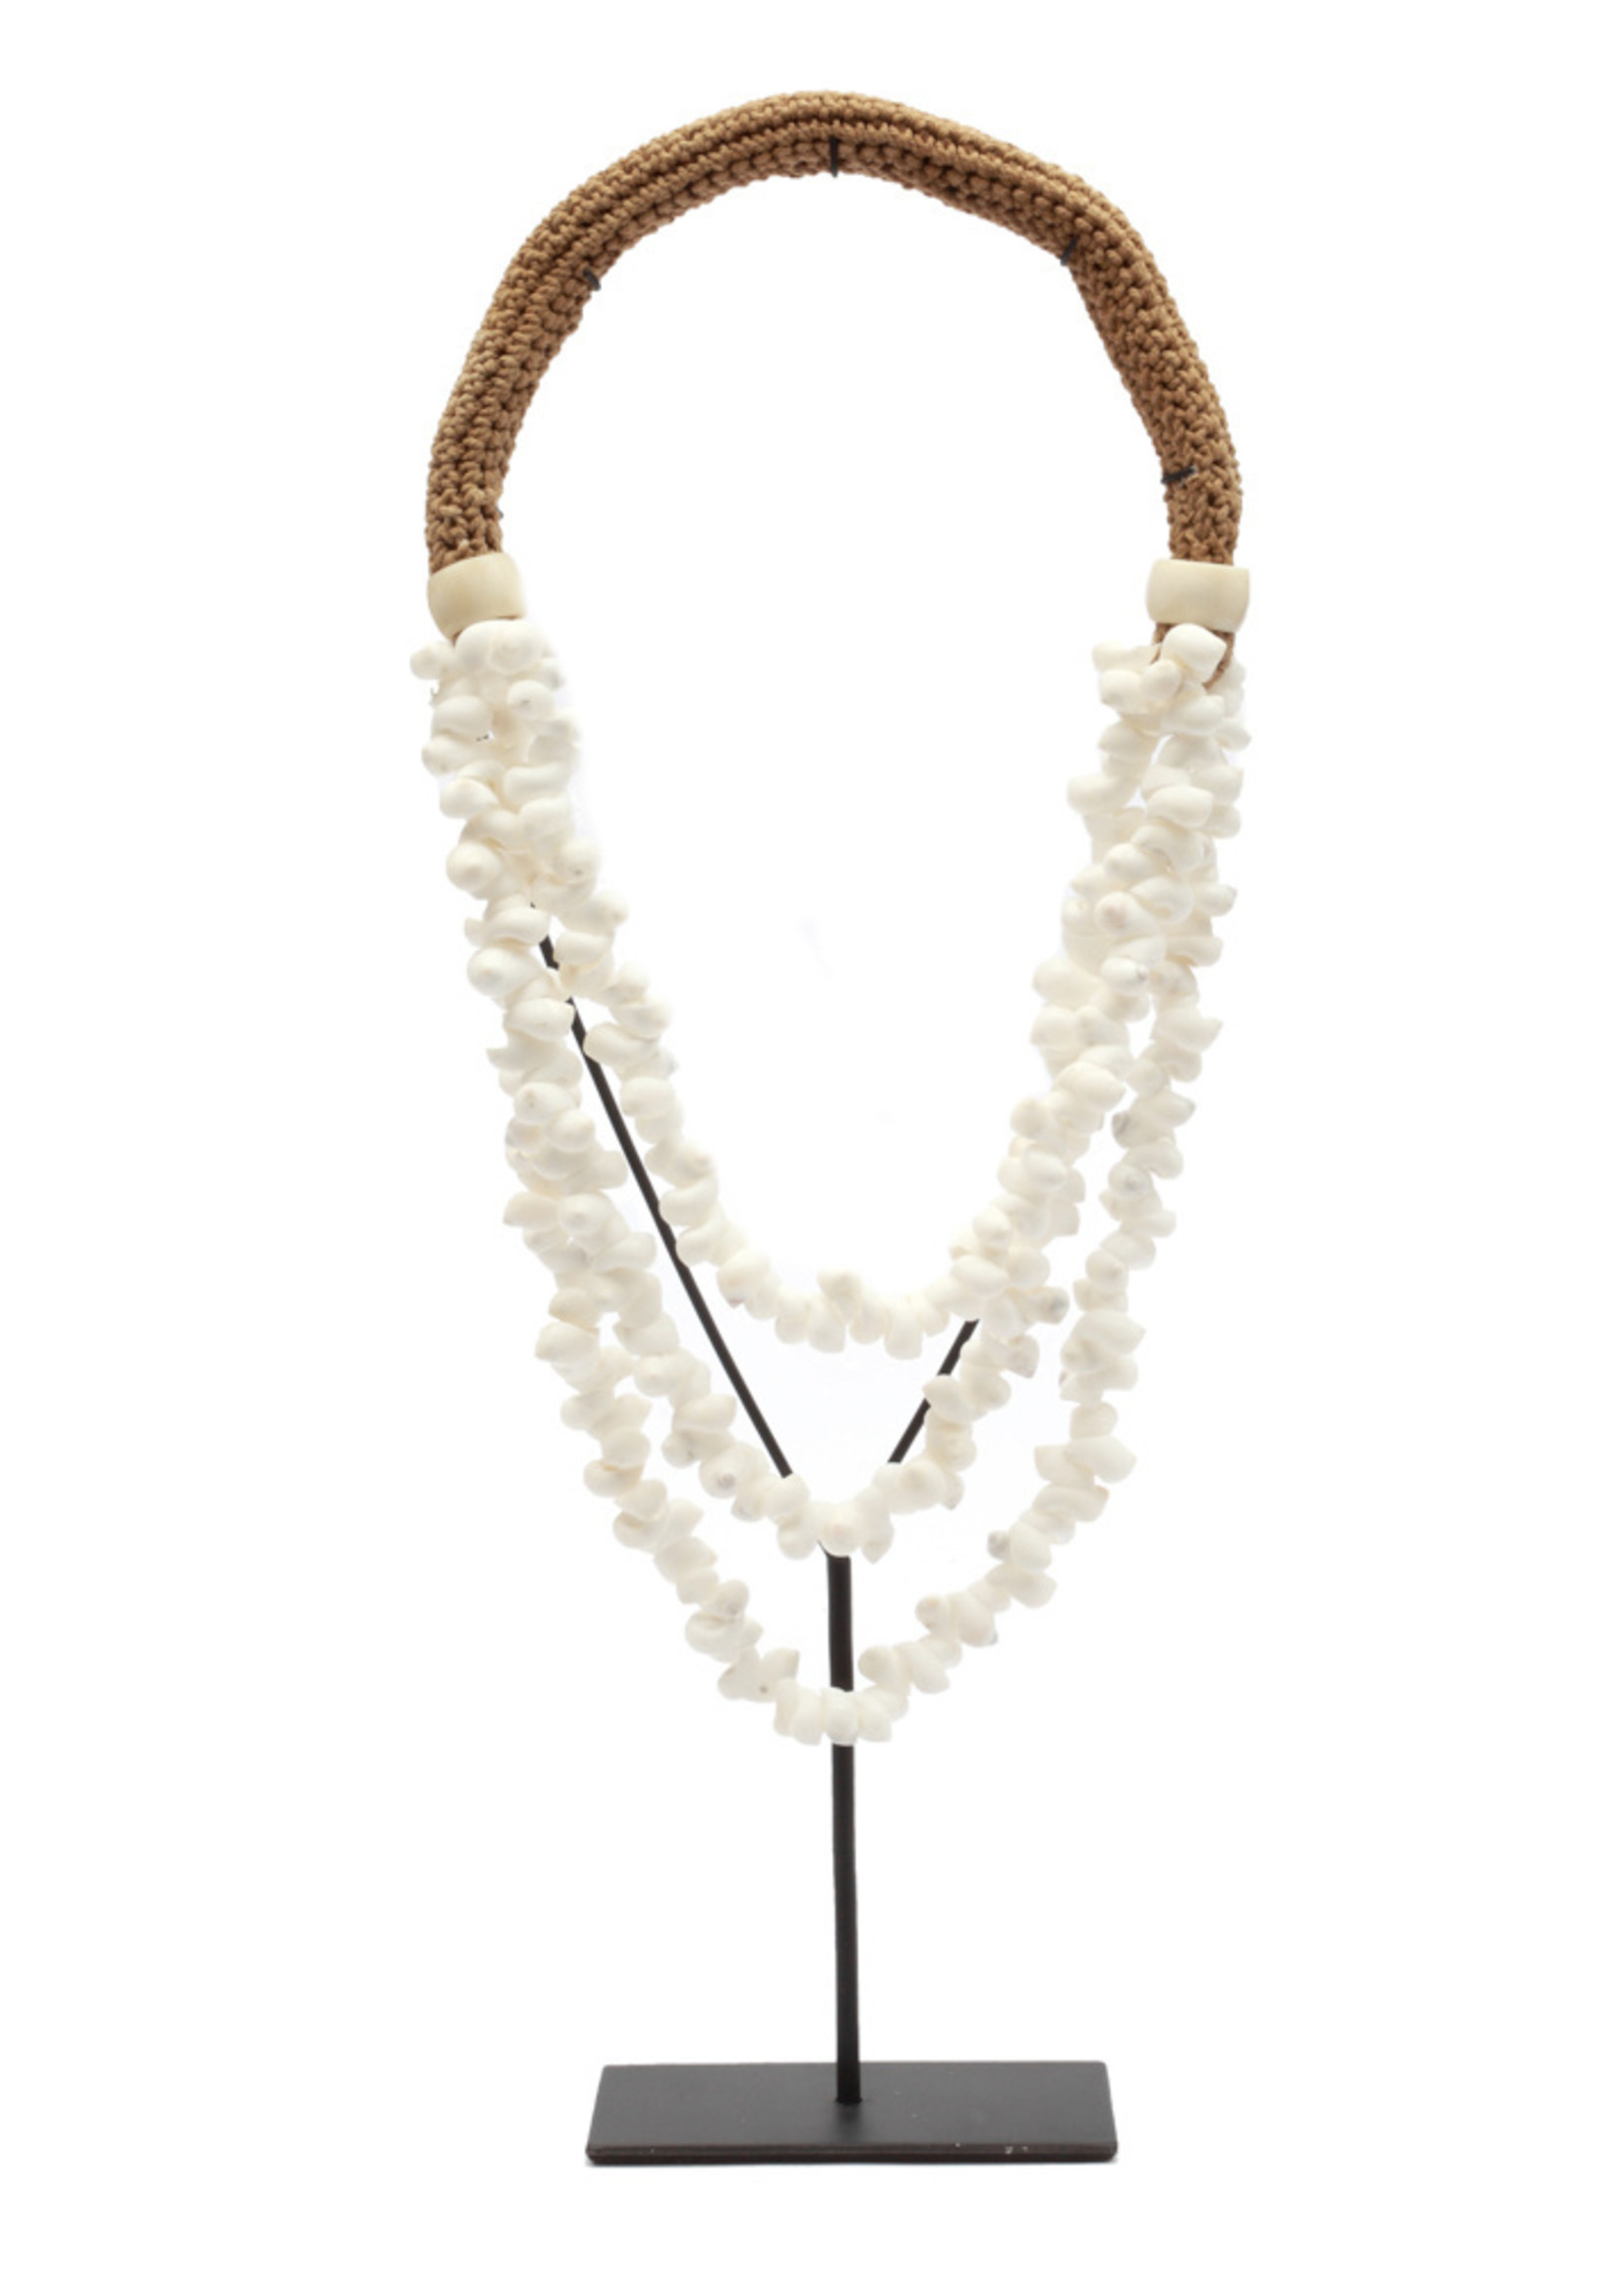 The White Shell Necklace on Stand